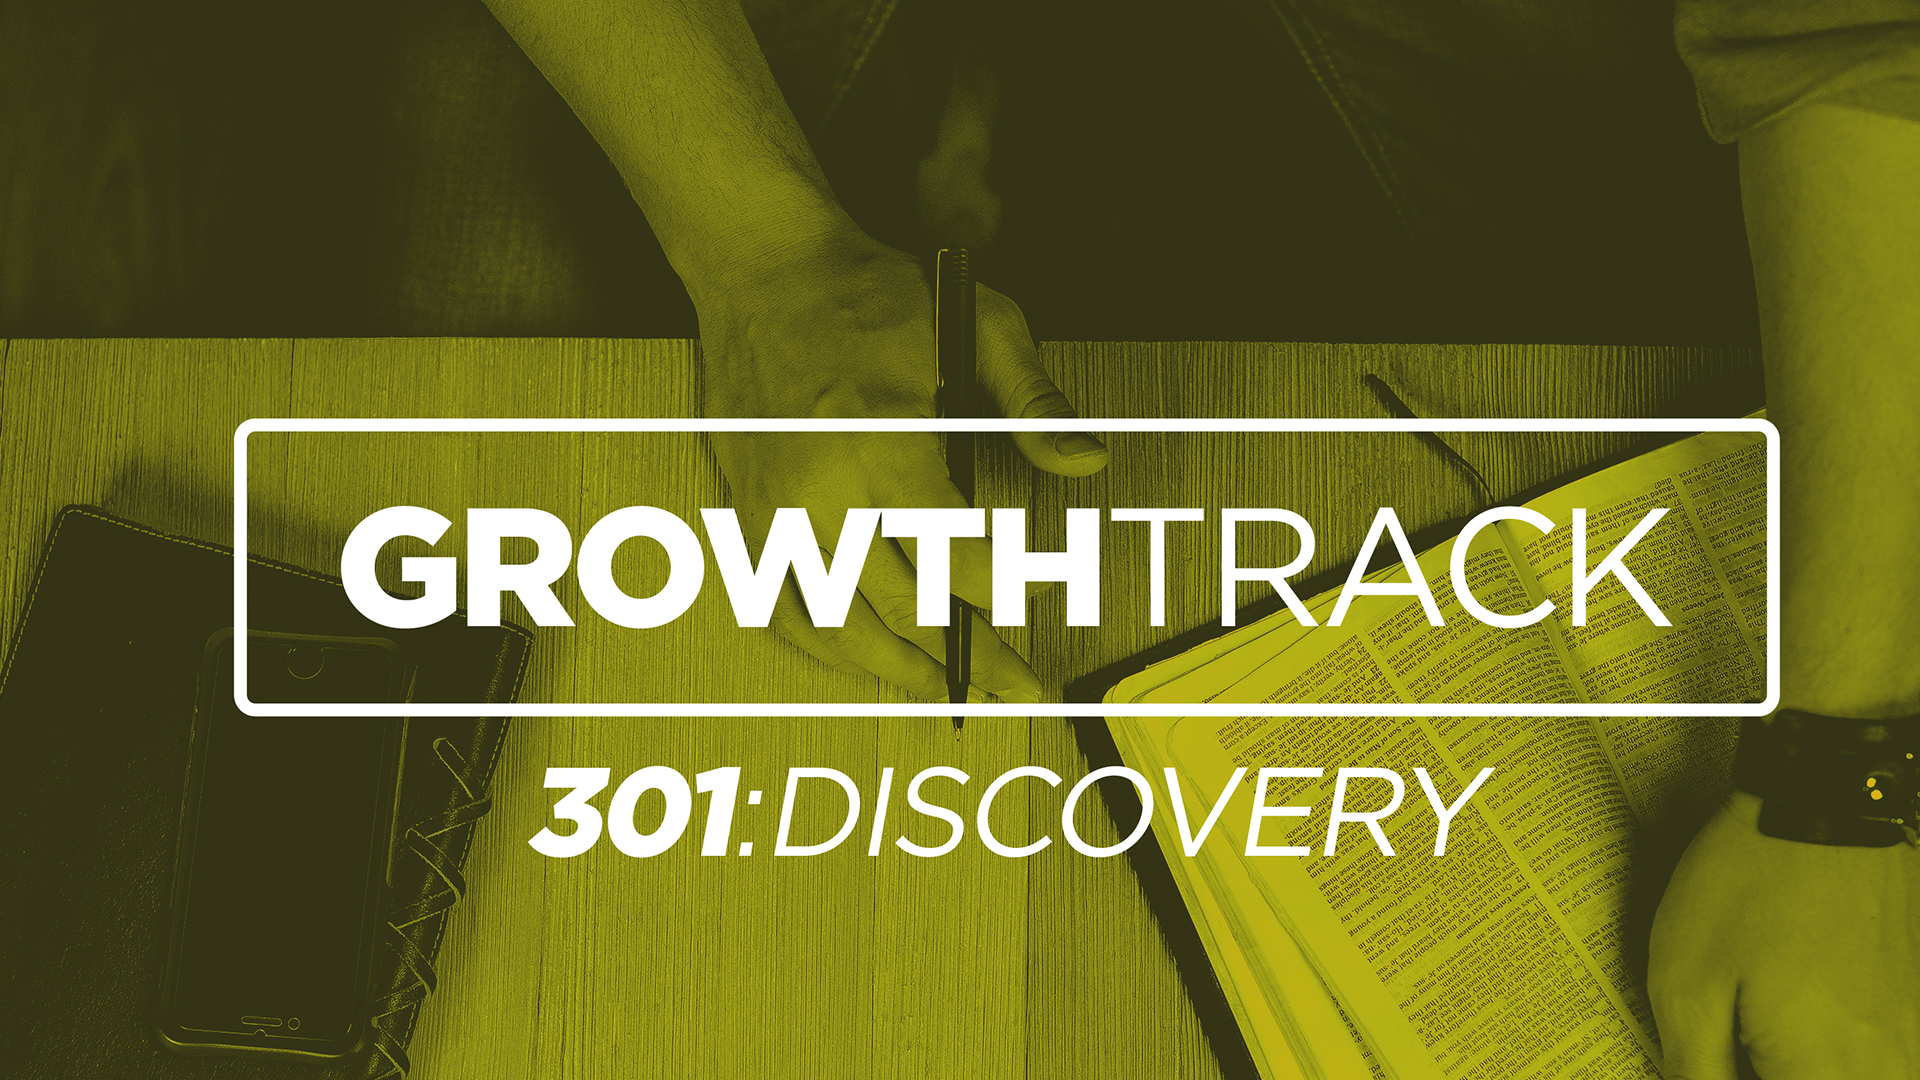 Step THREE - Discovery - Step Three of Growth Track helps you discover your purpose. God has created you with gifts and talents, and He wants you to know what they are. Next Step: Fill out a Volunteer Application